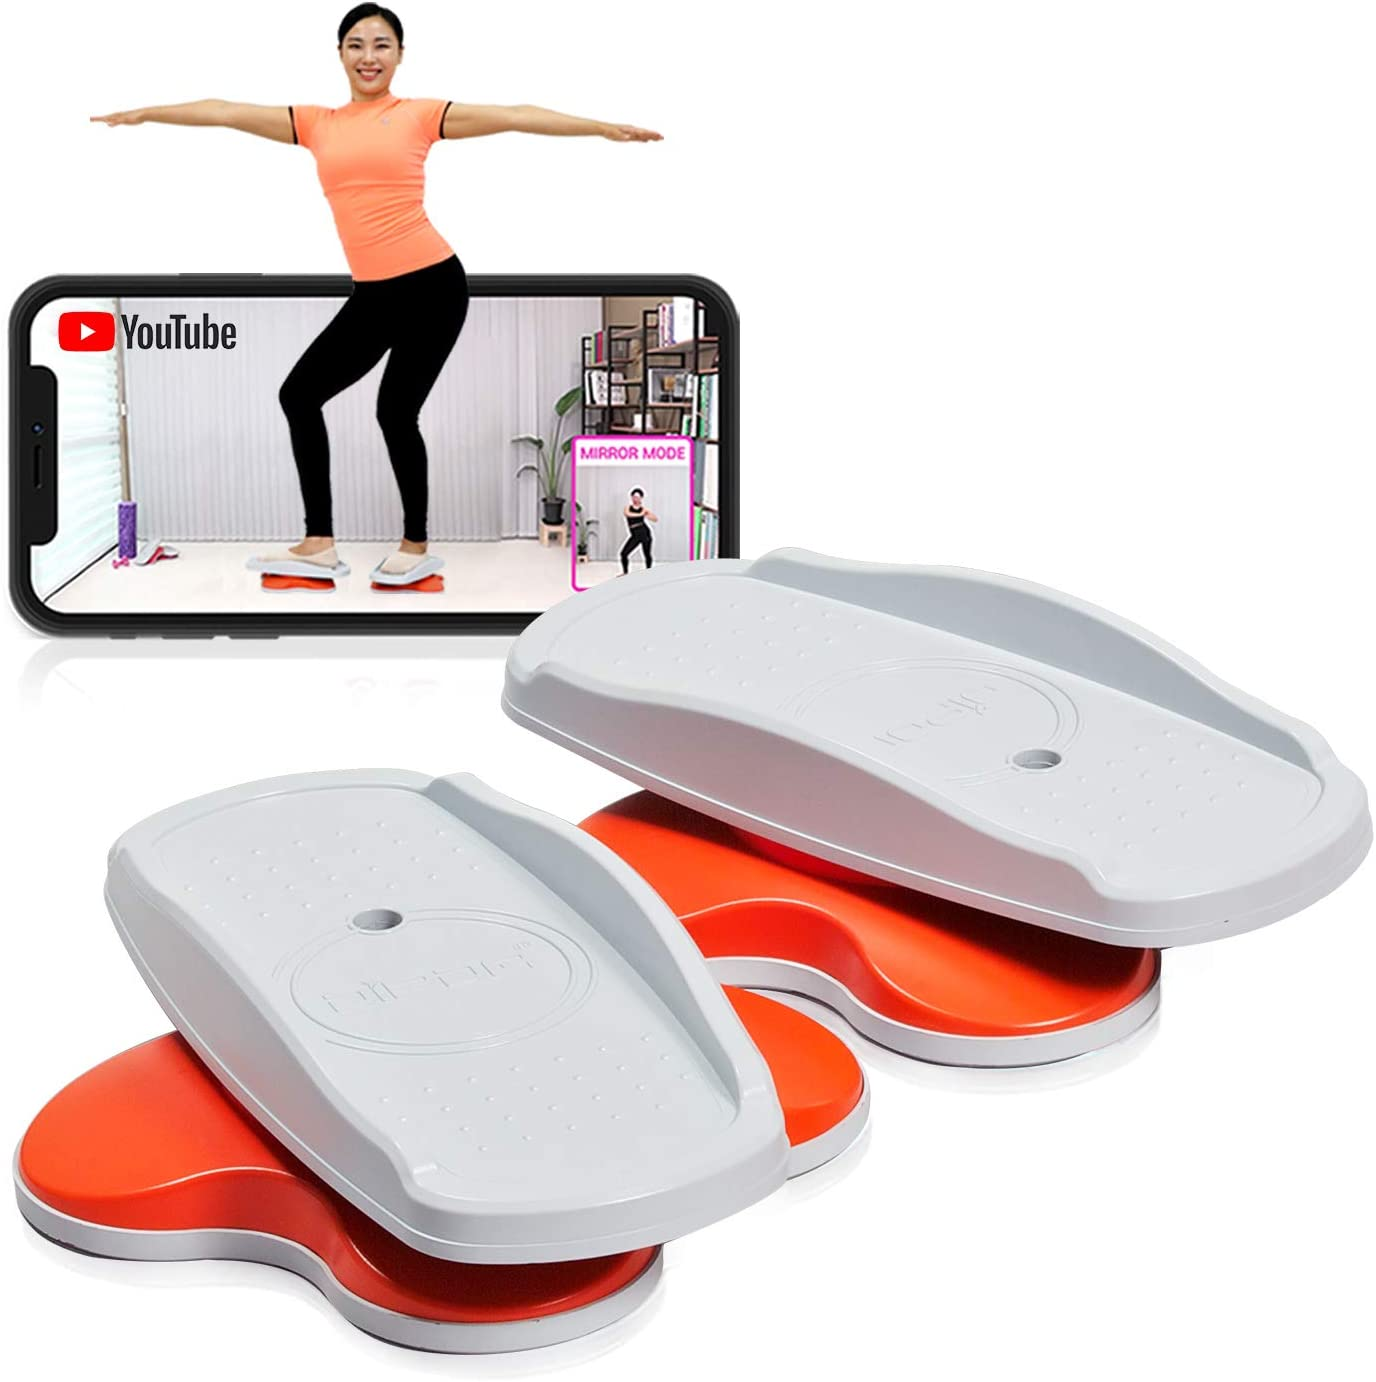 DIPDA LINE Stepper Twisting Indoor Workout Equipment Fitness Cardio Exercise with Bonus Dance Video and APP Guide 3.3 pounds 1.5 Kg Portable Celebrating AMZN Choice's Limited Deals! : Sports & Outdoors